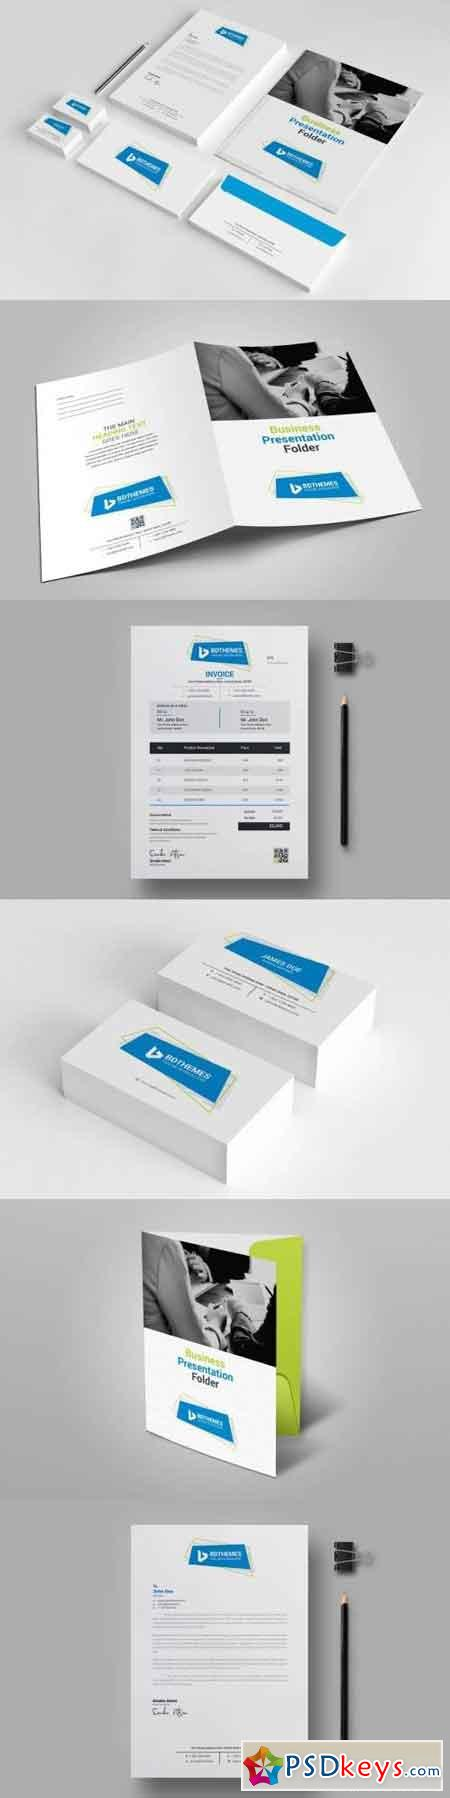 Business Stationery Template 06